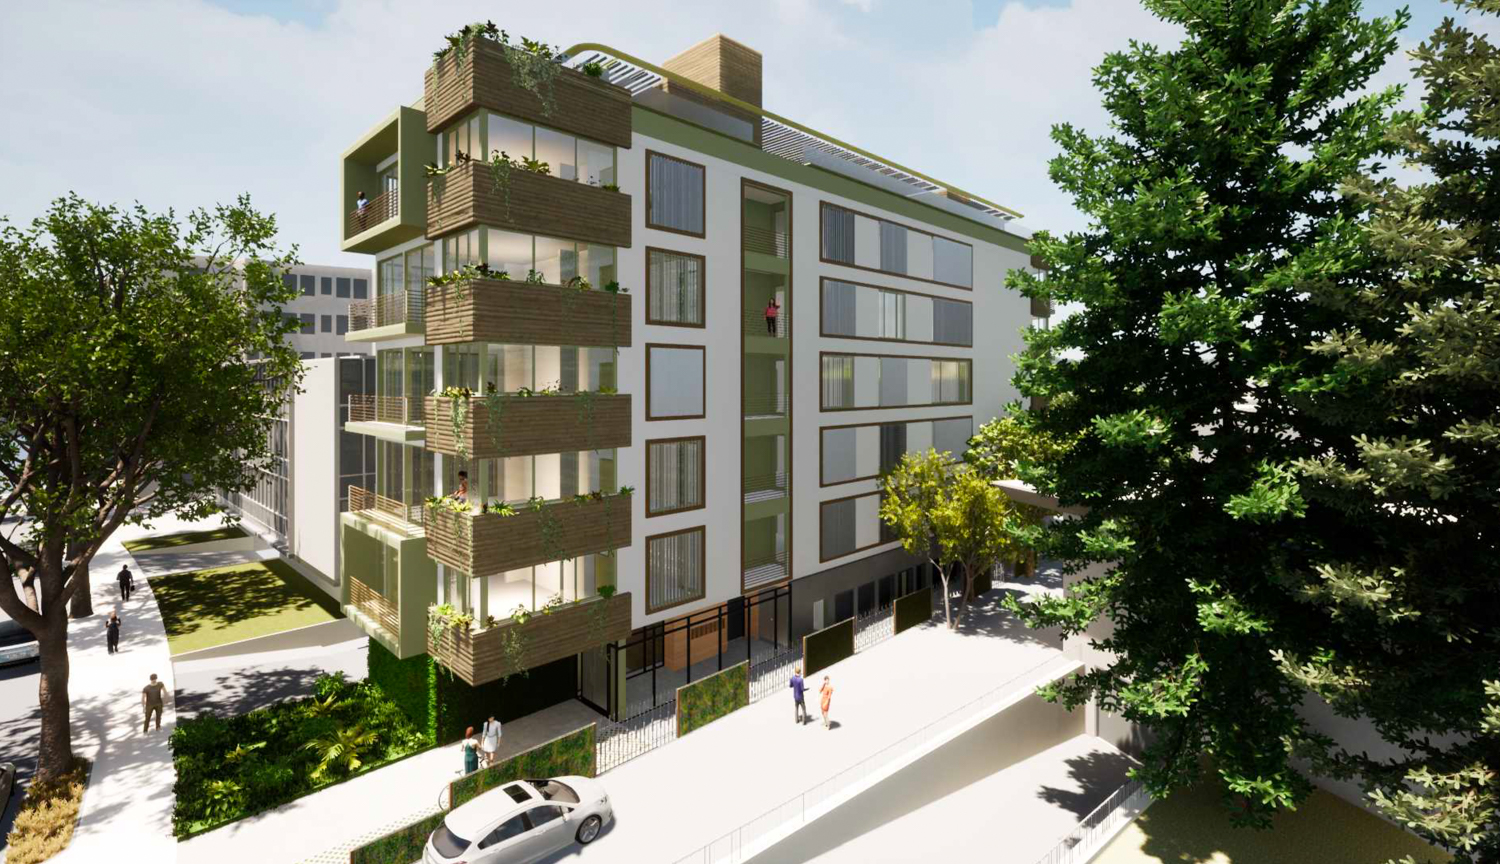 1412 Bellevue Avenue aerial perspective, rendering by MH Architects